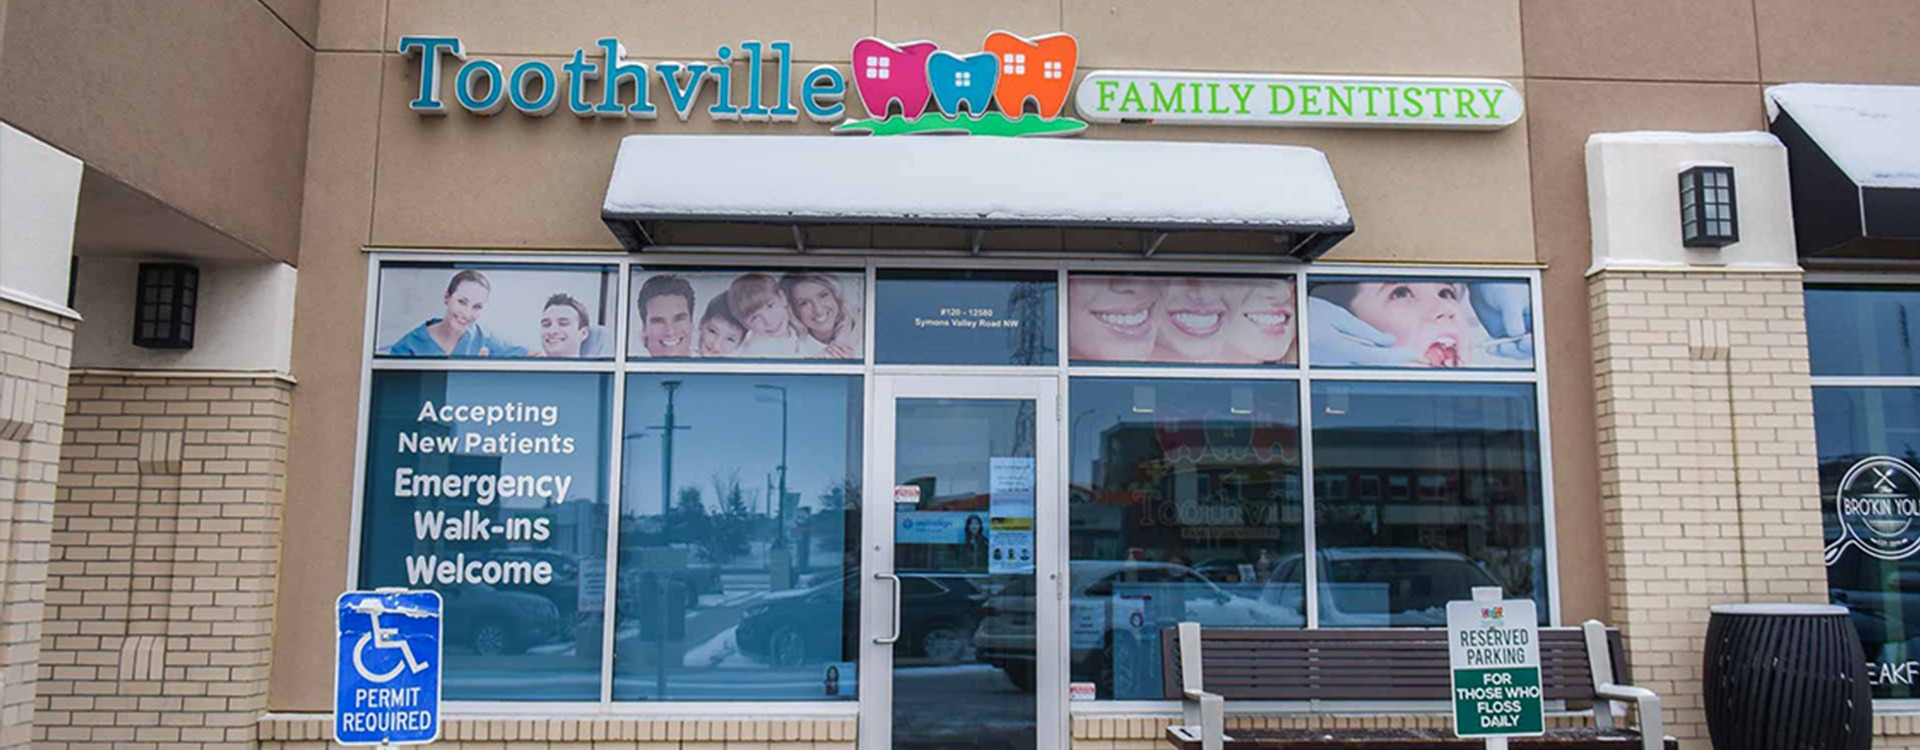 Building Front | Toothville Family Dentistry | NW Calgary | General Dentist